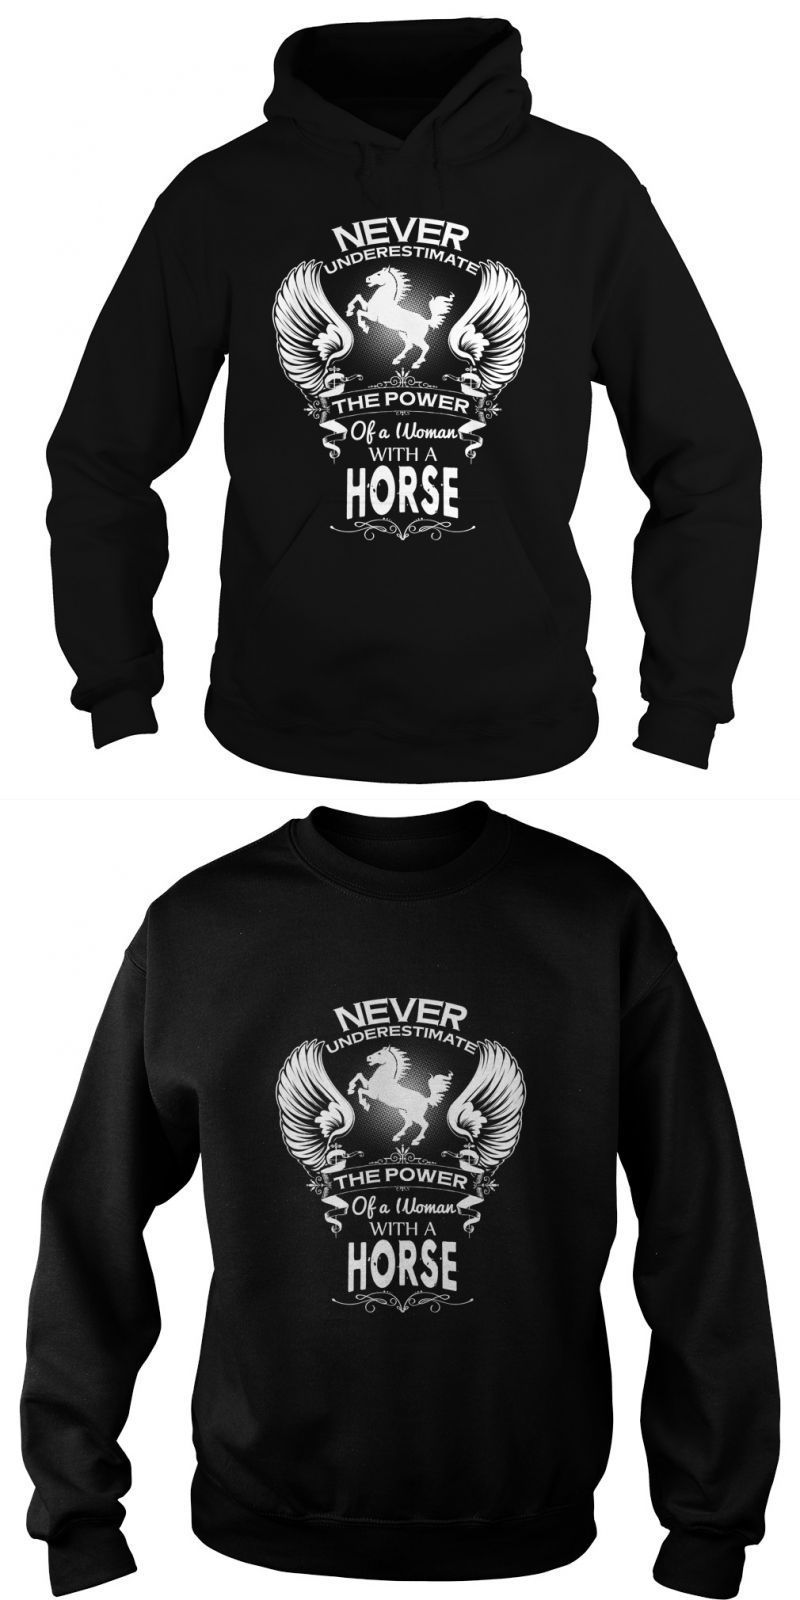 Horse Patti Smith T Shirt Horses Collection Polo Black Charlie Dark 3 5 I Love It White With